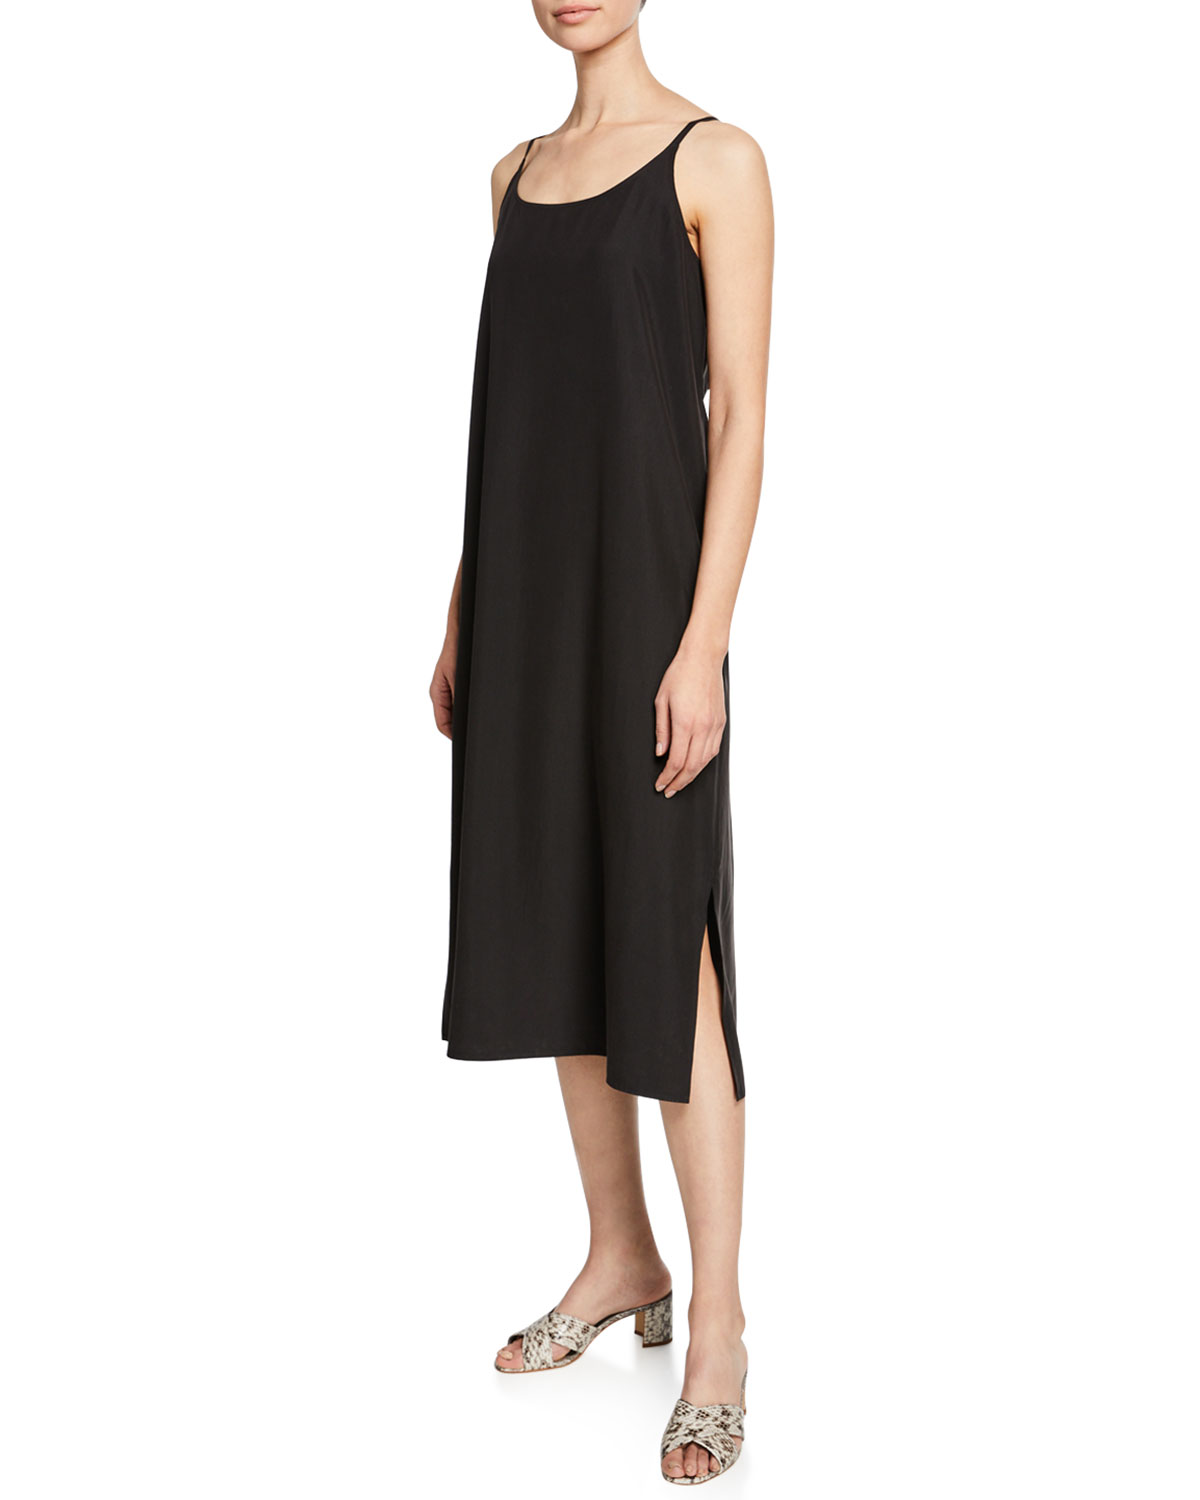 4549c4aeb793 Eileen Fisher Sandwashed Scoop-Neck Slip Dress | Neiman Marcus